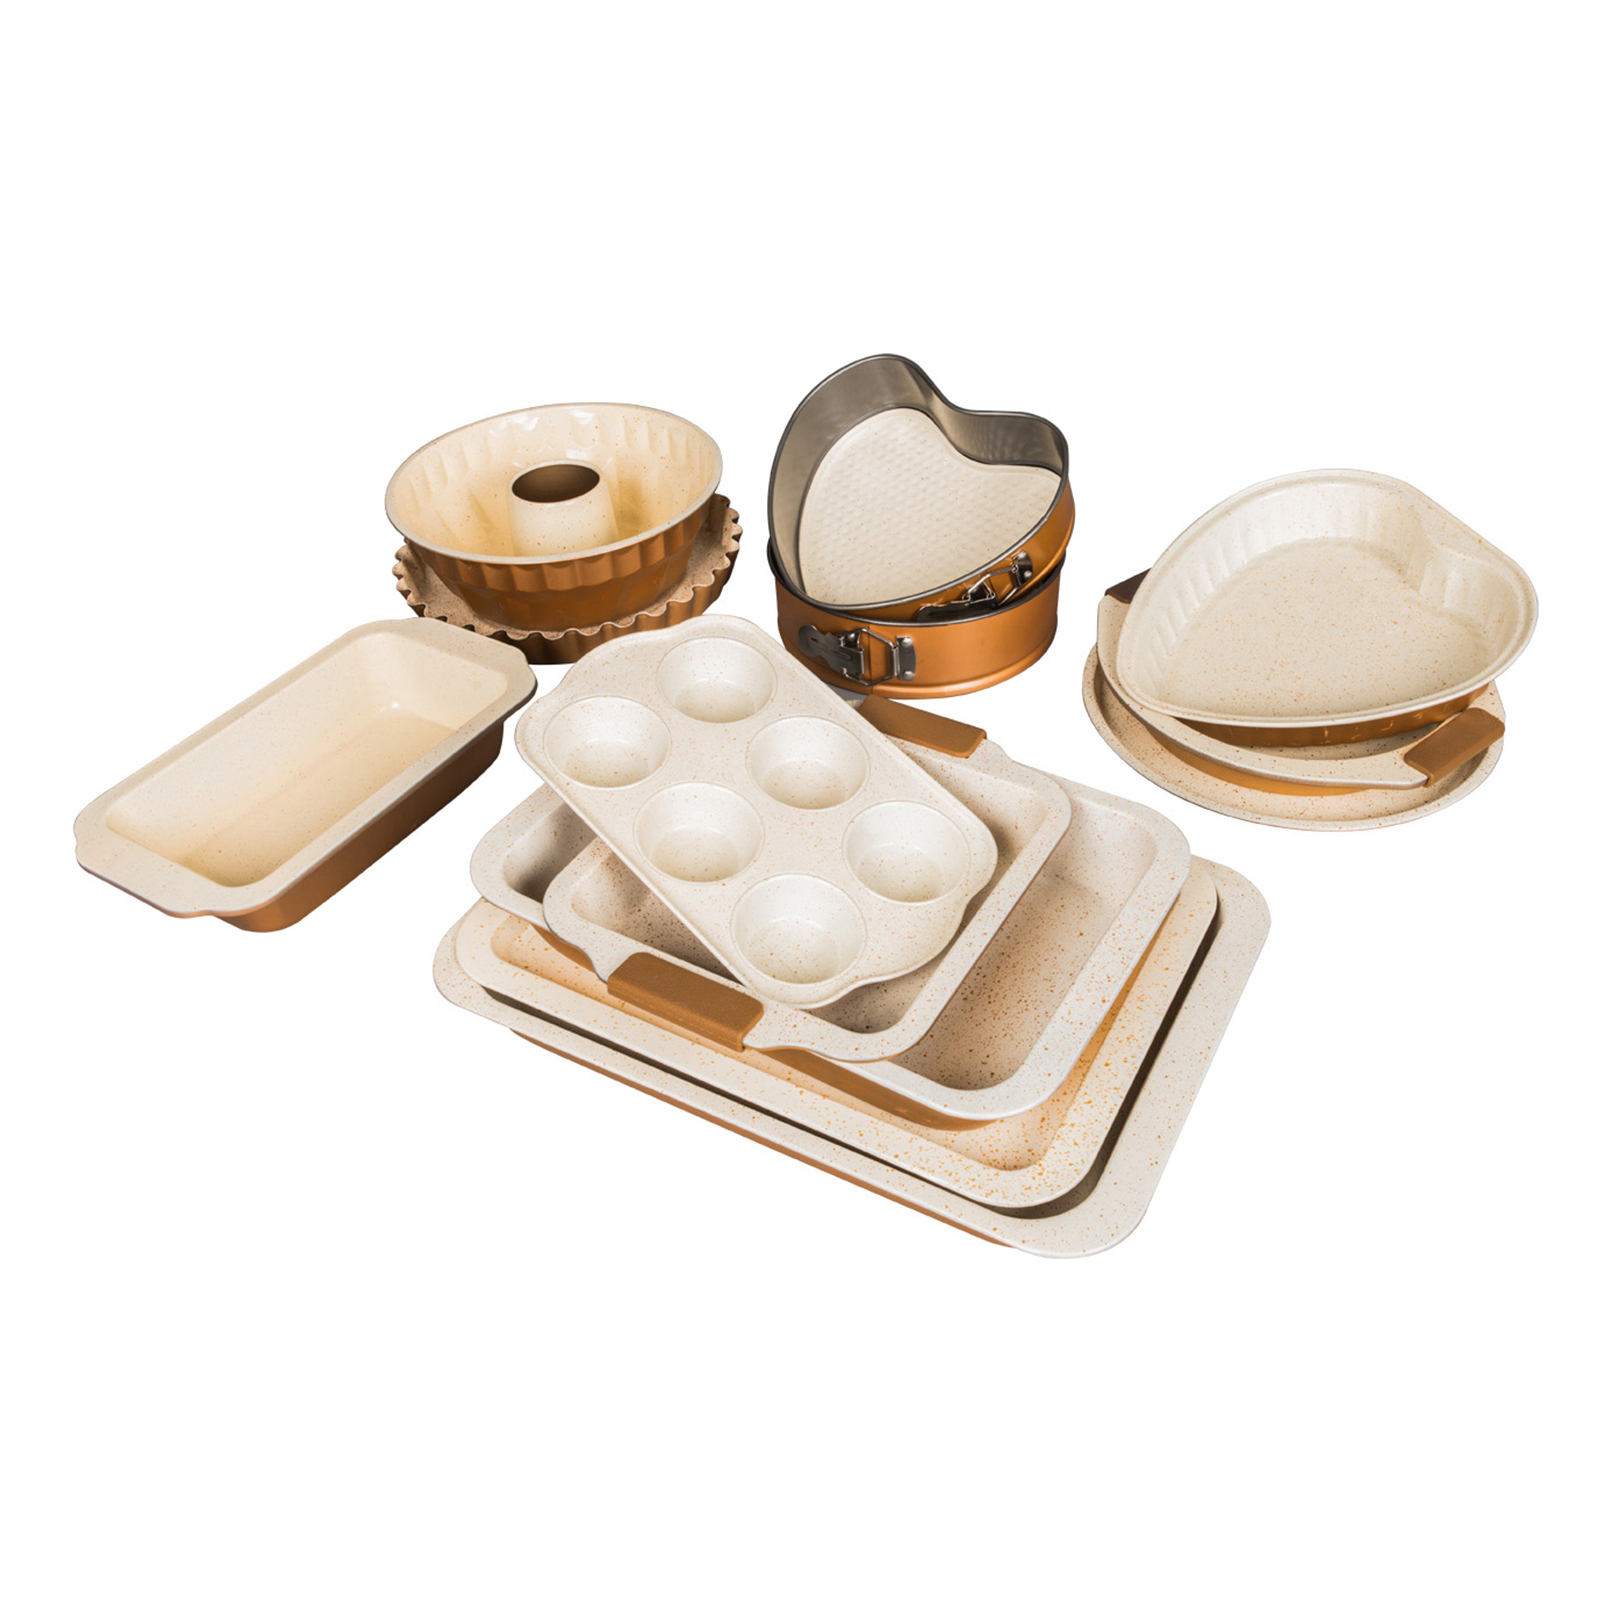 CREAM CERAMIC BAKEWARE SERIESCOLOR08